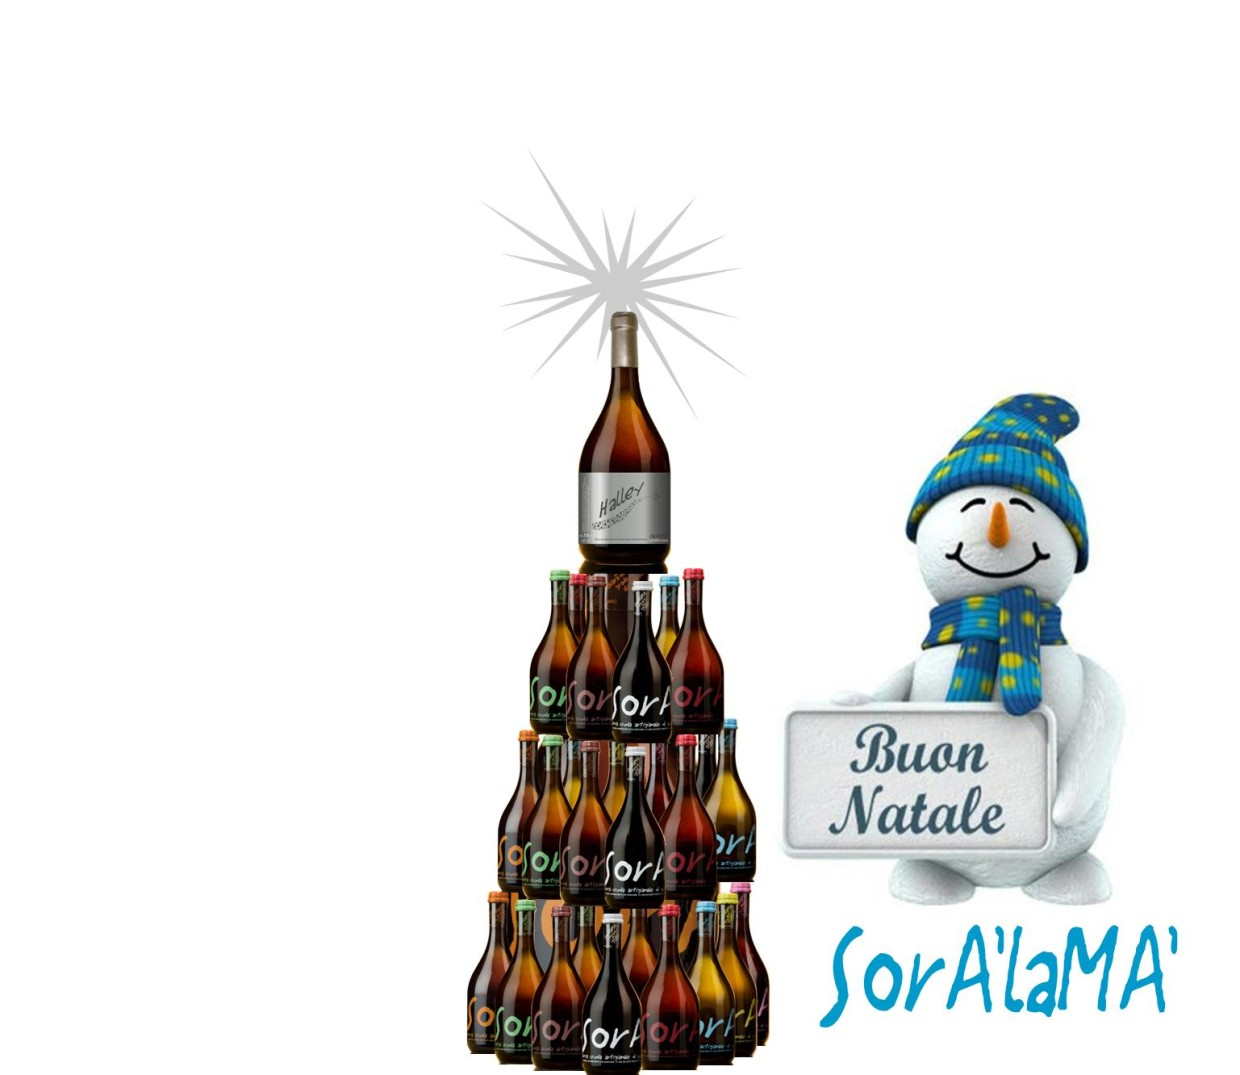 MERRY CHRISTMAS AND HAPPY NEW BEER 2014